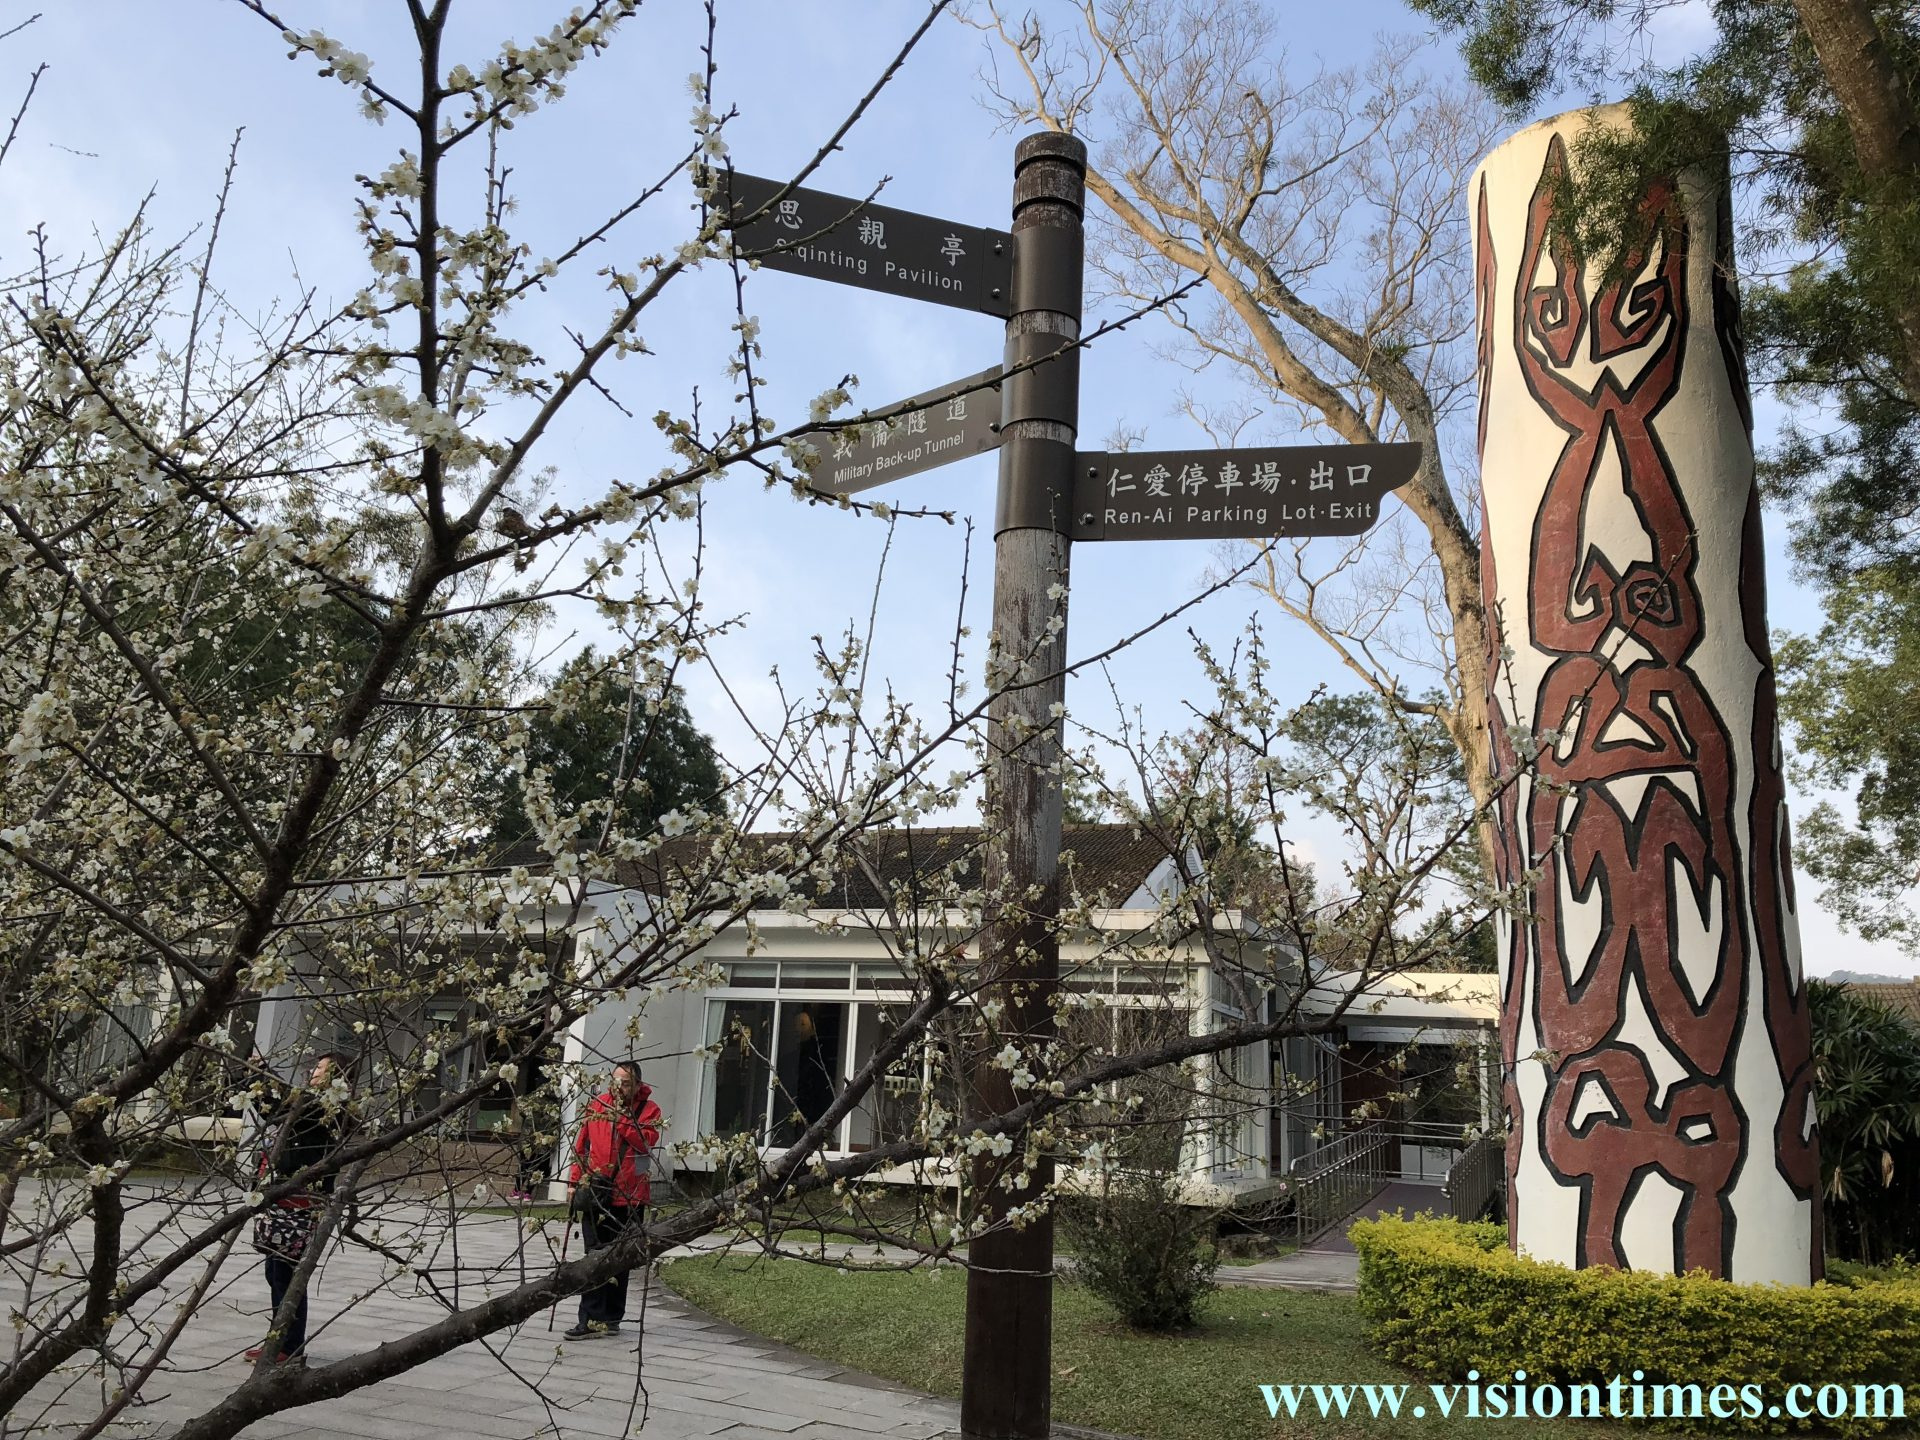 The Jiabanshan Guesthouse (角板山賓館) was built in 1960. (Image: Billy Shyu / Vision Times)